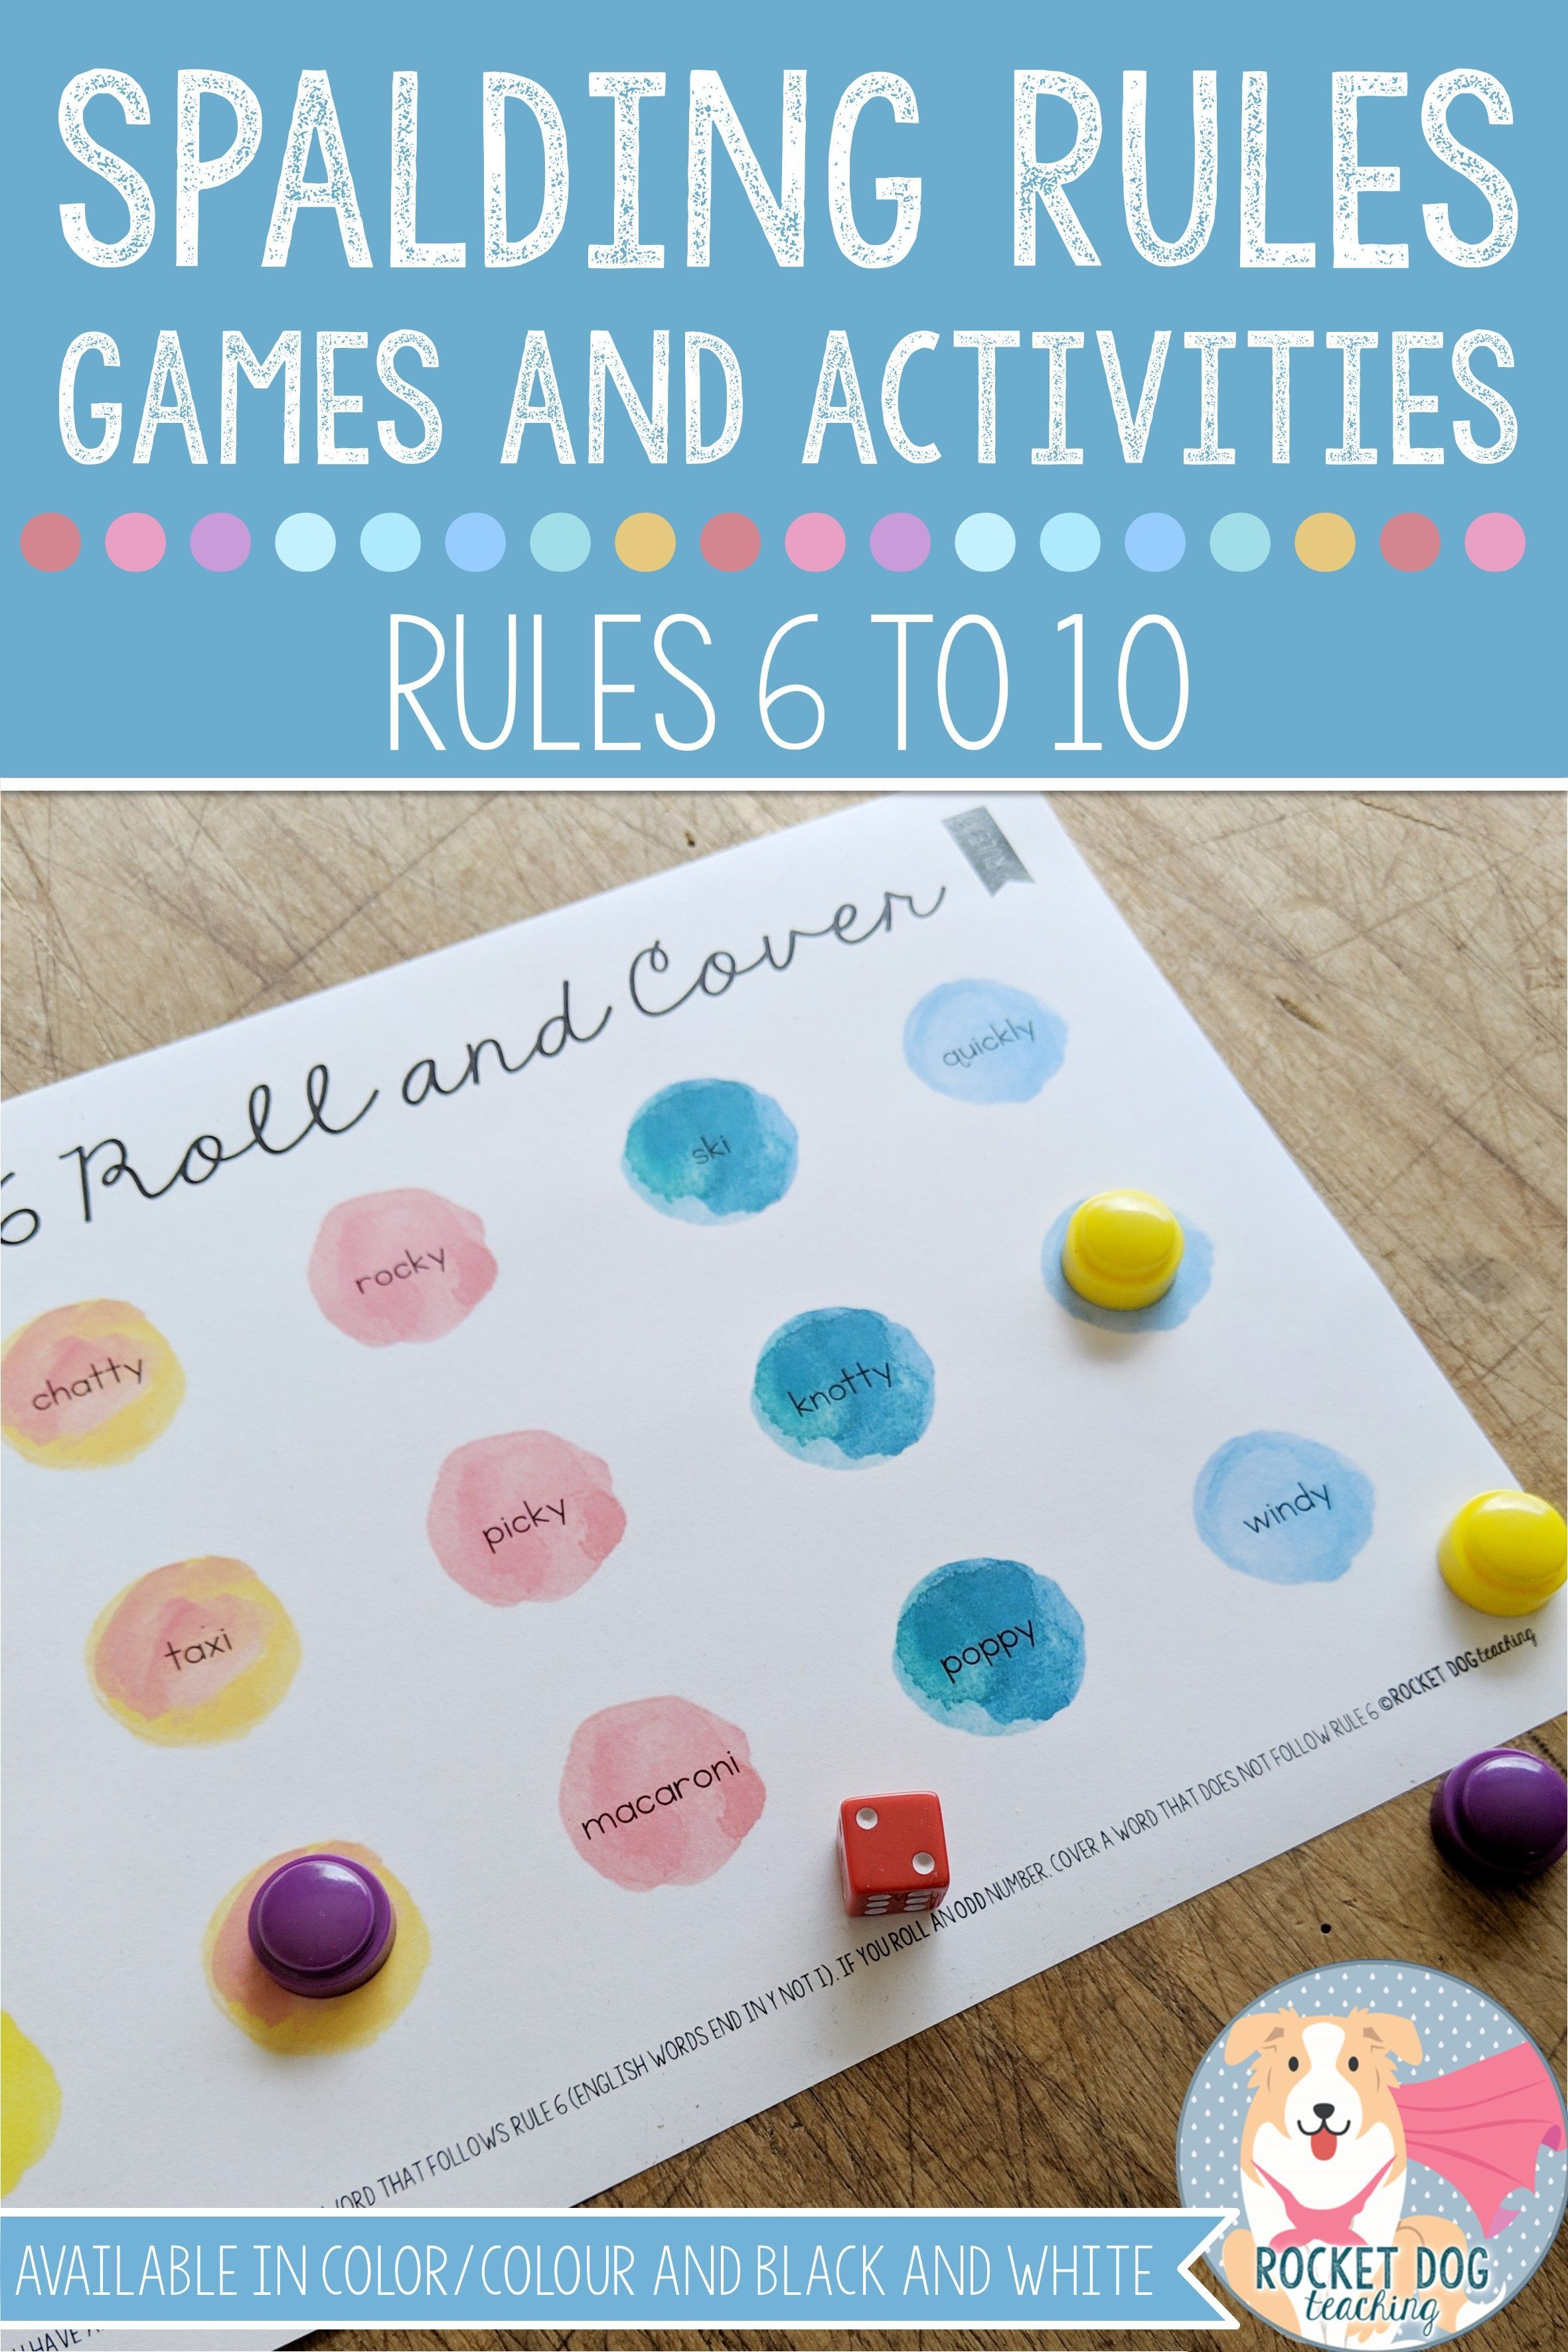 Spelling Rules Games And Activities Rules 6 To 10 For